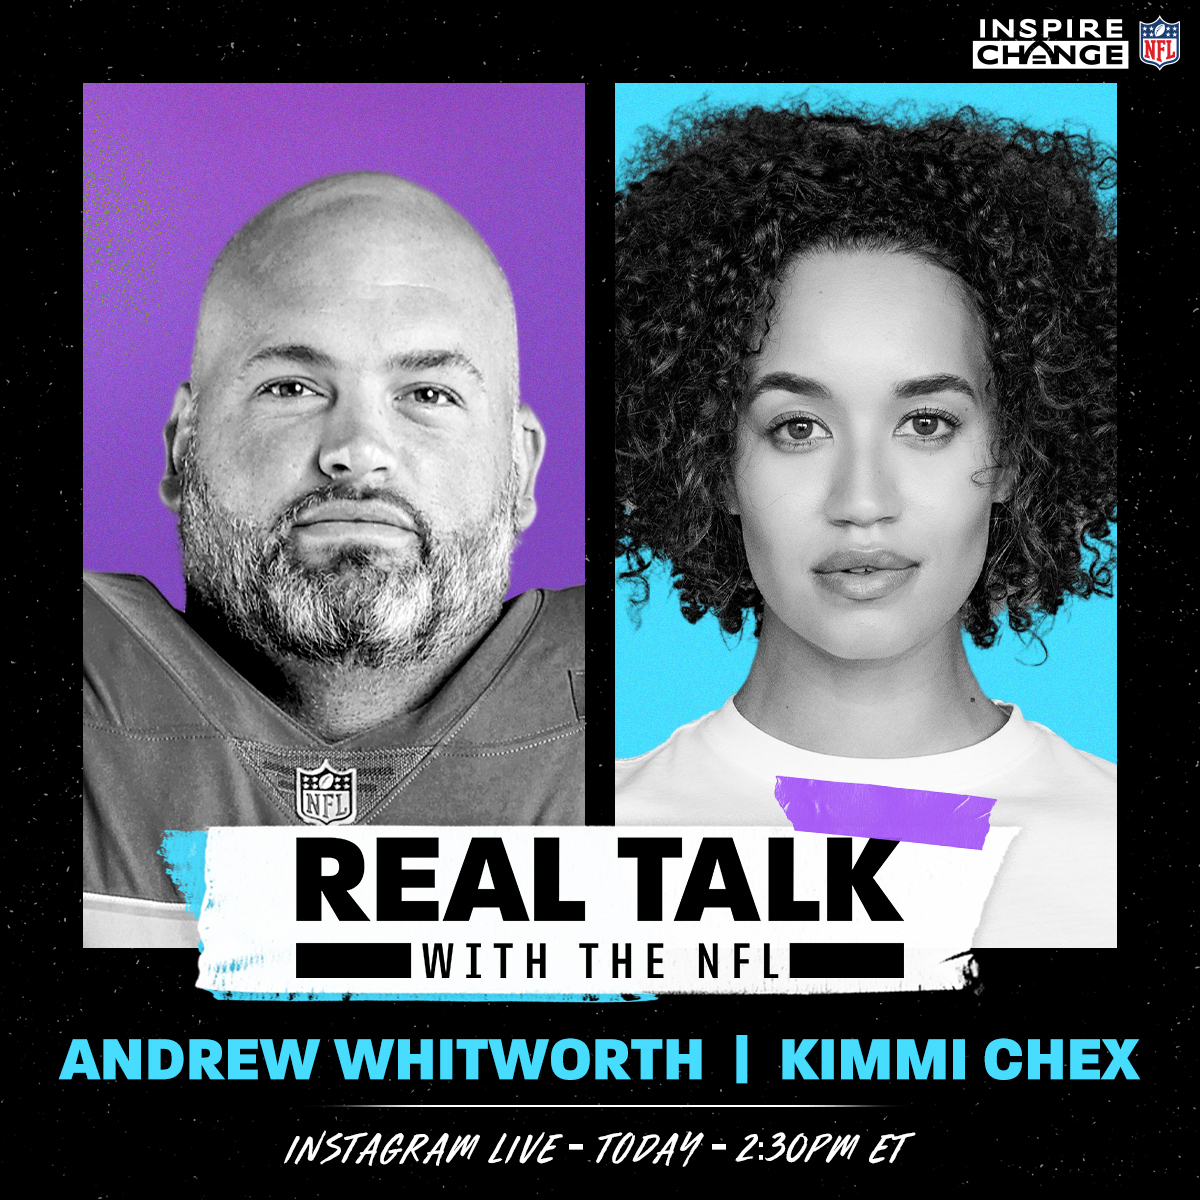 A #WPMOY nominee for the third straight season, @RamsNFL OL Andrew Whitworth joins @kimmichex TODAY at 2:30 p.m. ET on our IG Live:  #InspireChange